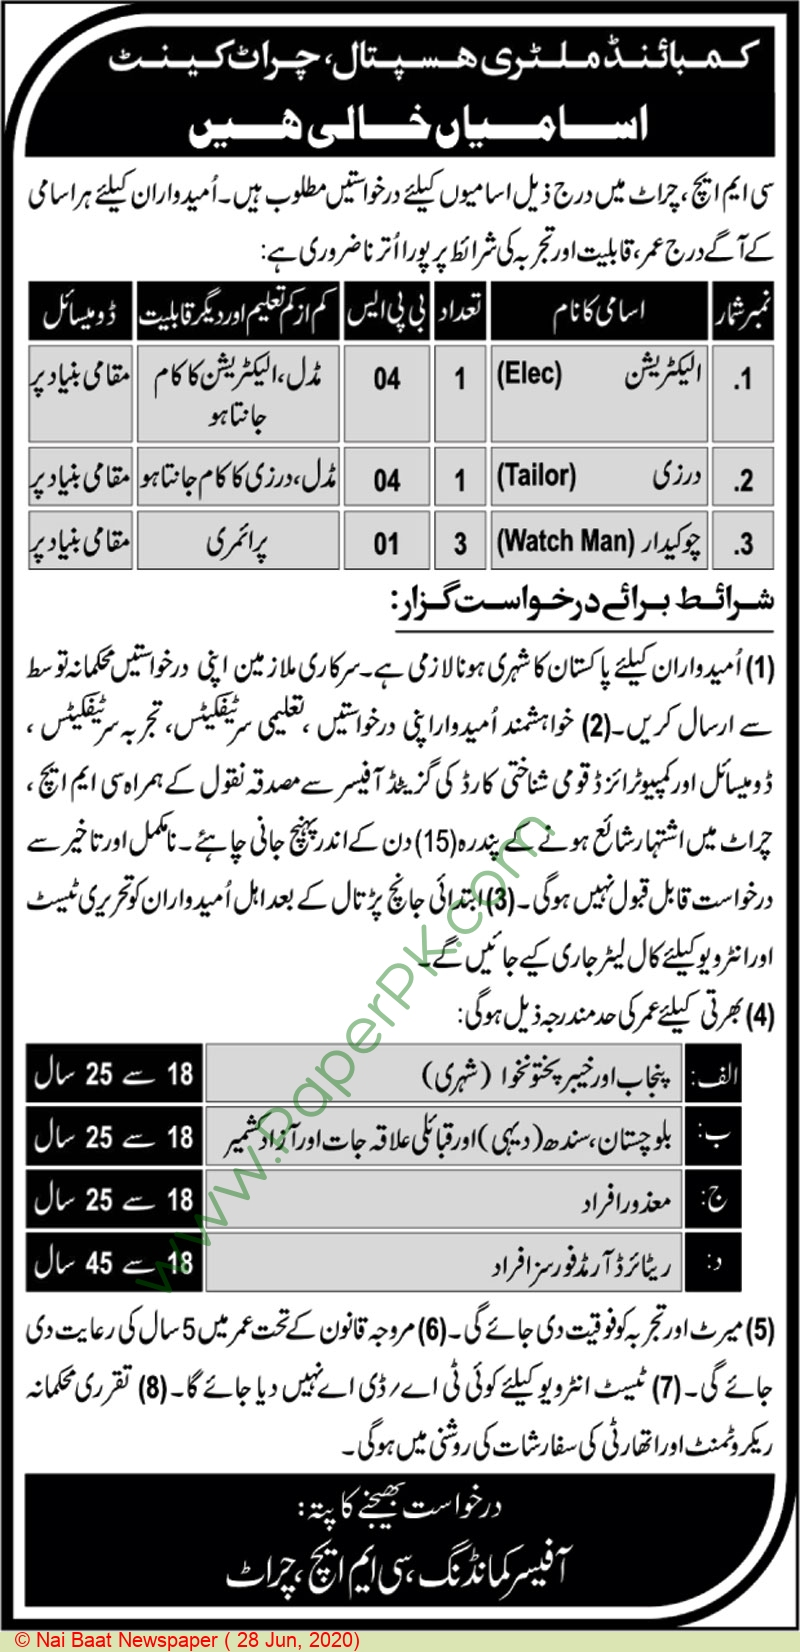 Combined Military Hospital jobs newspaper ad for Electrician in Peshawar